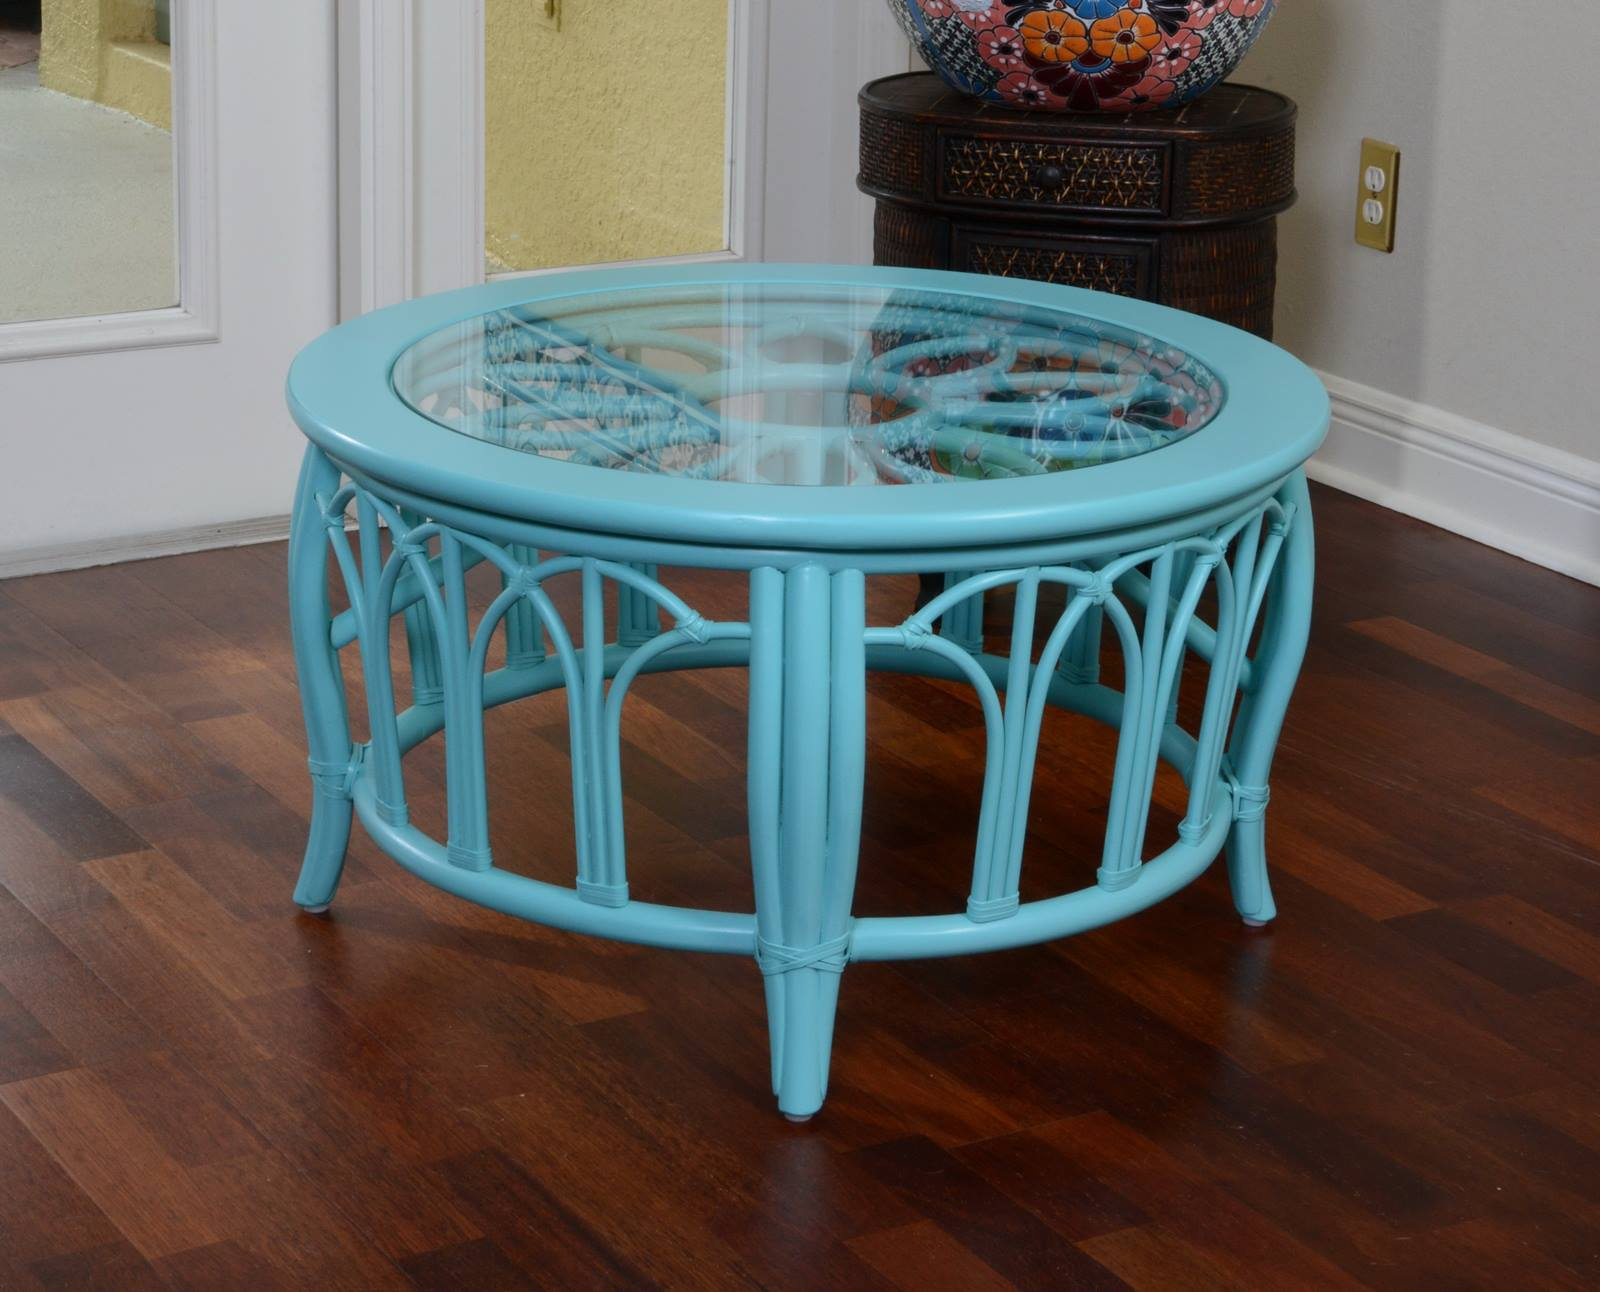 Cuba Round Cocktail Table With Glass Wicker One Imports Your Casual Furni